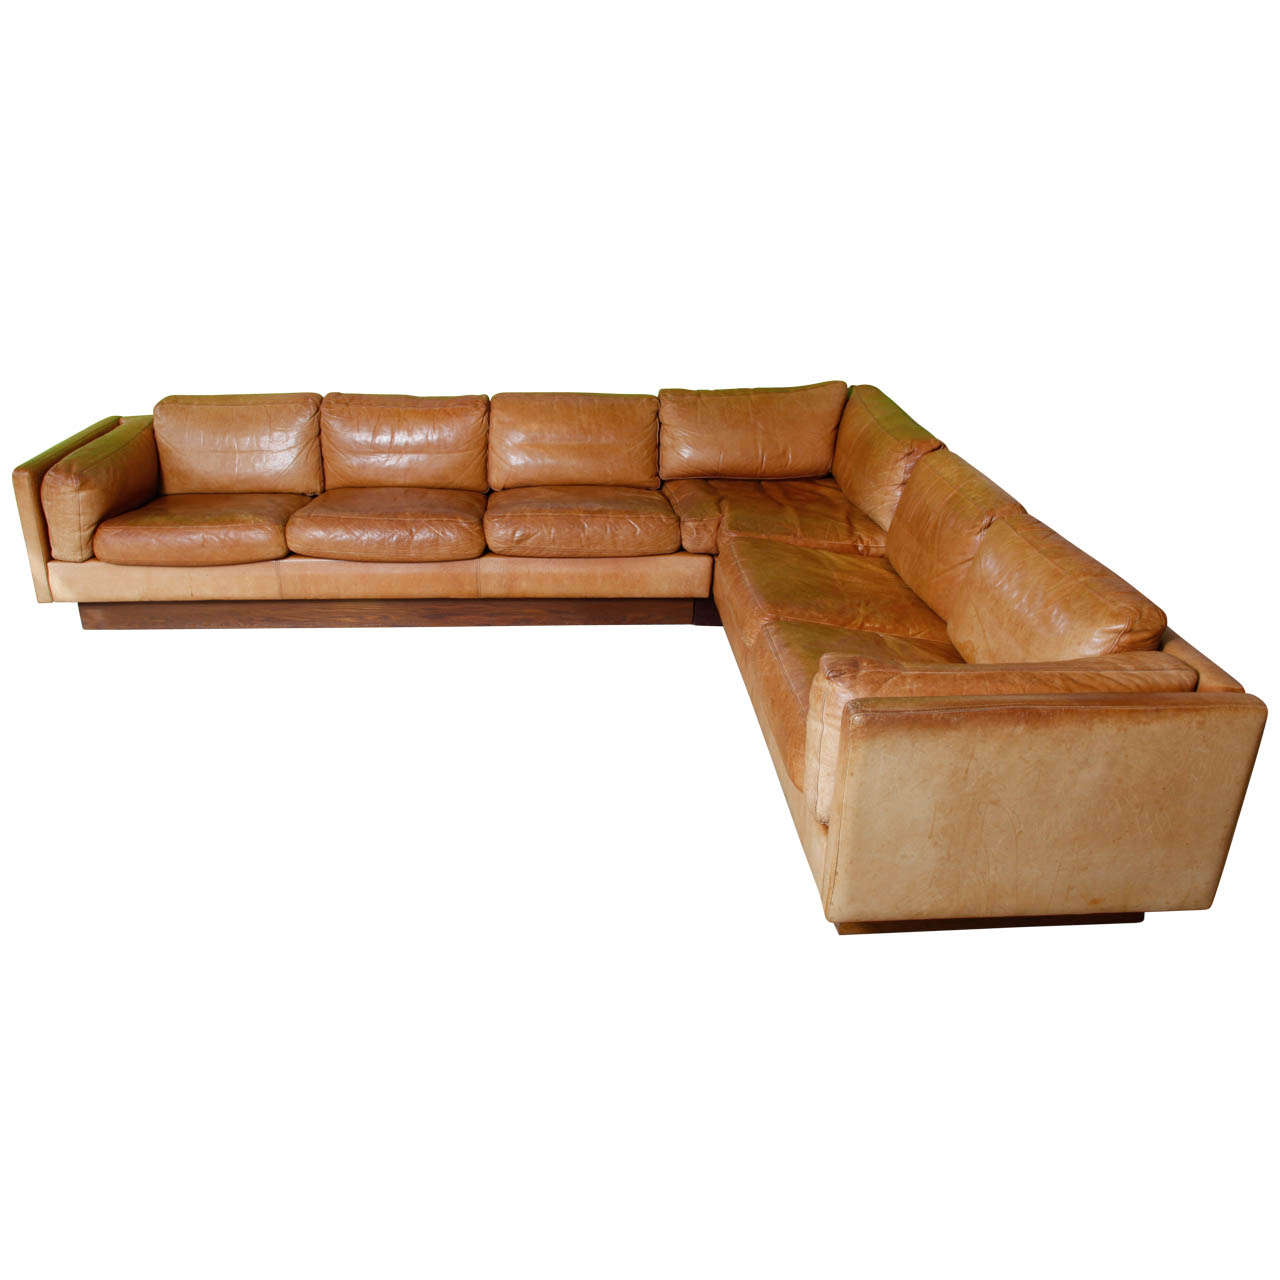 Shaped Leather And Wood Sofa 1970 At 1stdibs. Full resolution‎  portrait, nominally Width 1280 Height 1280 pixels, portrait with #3C180B.